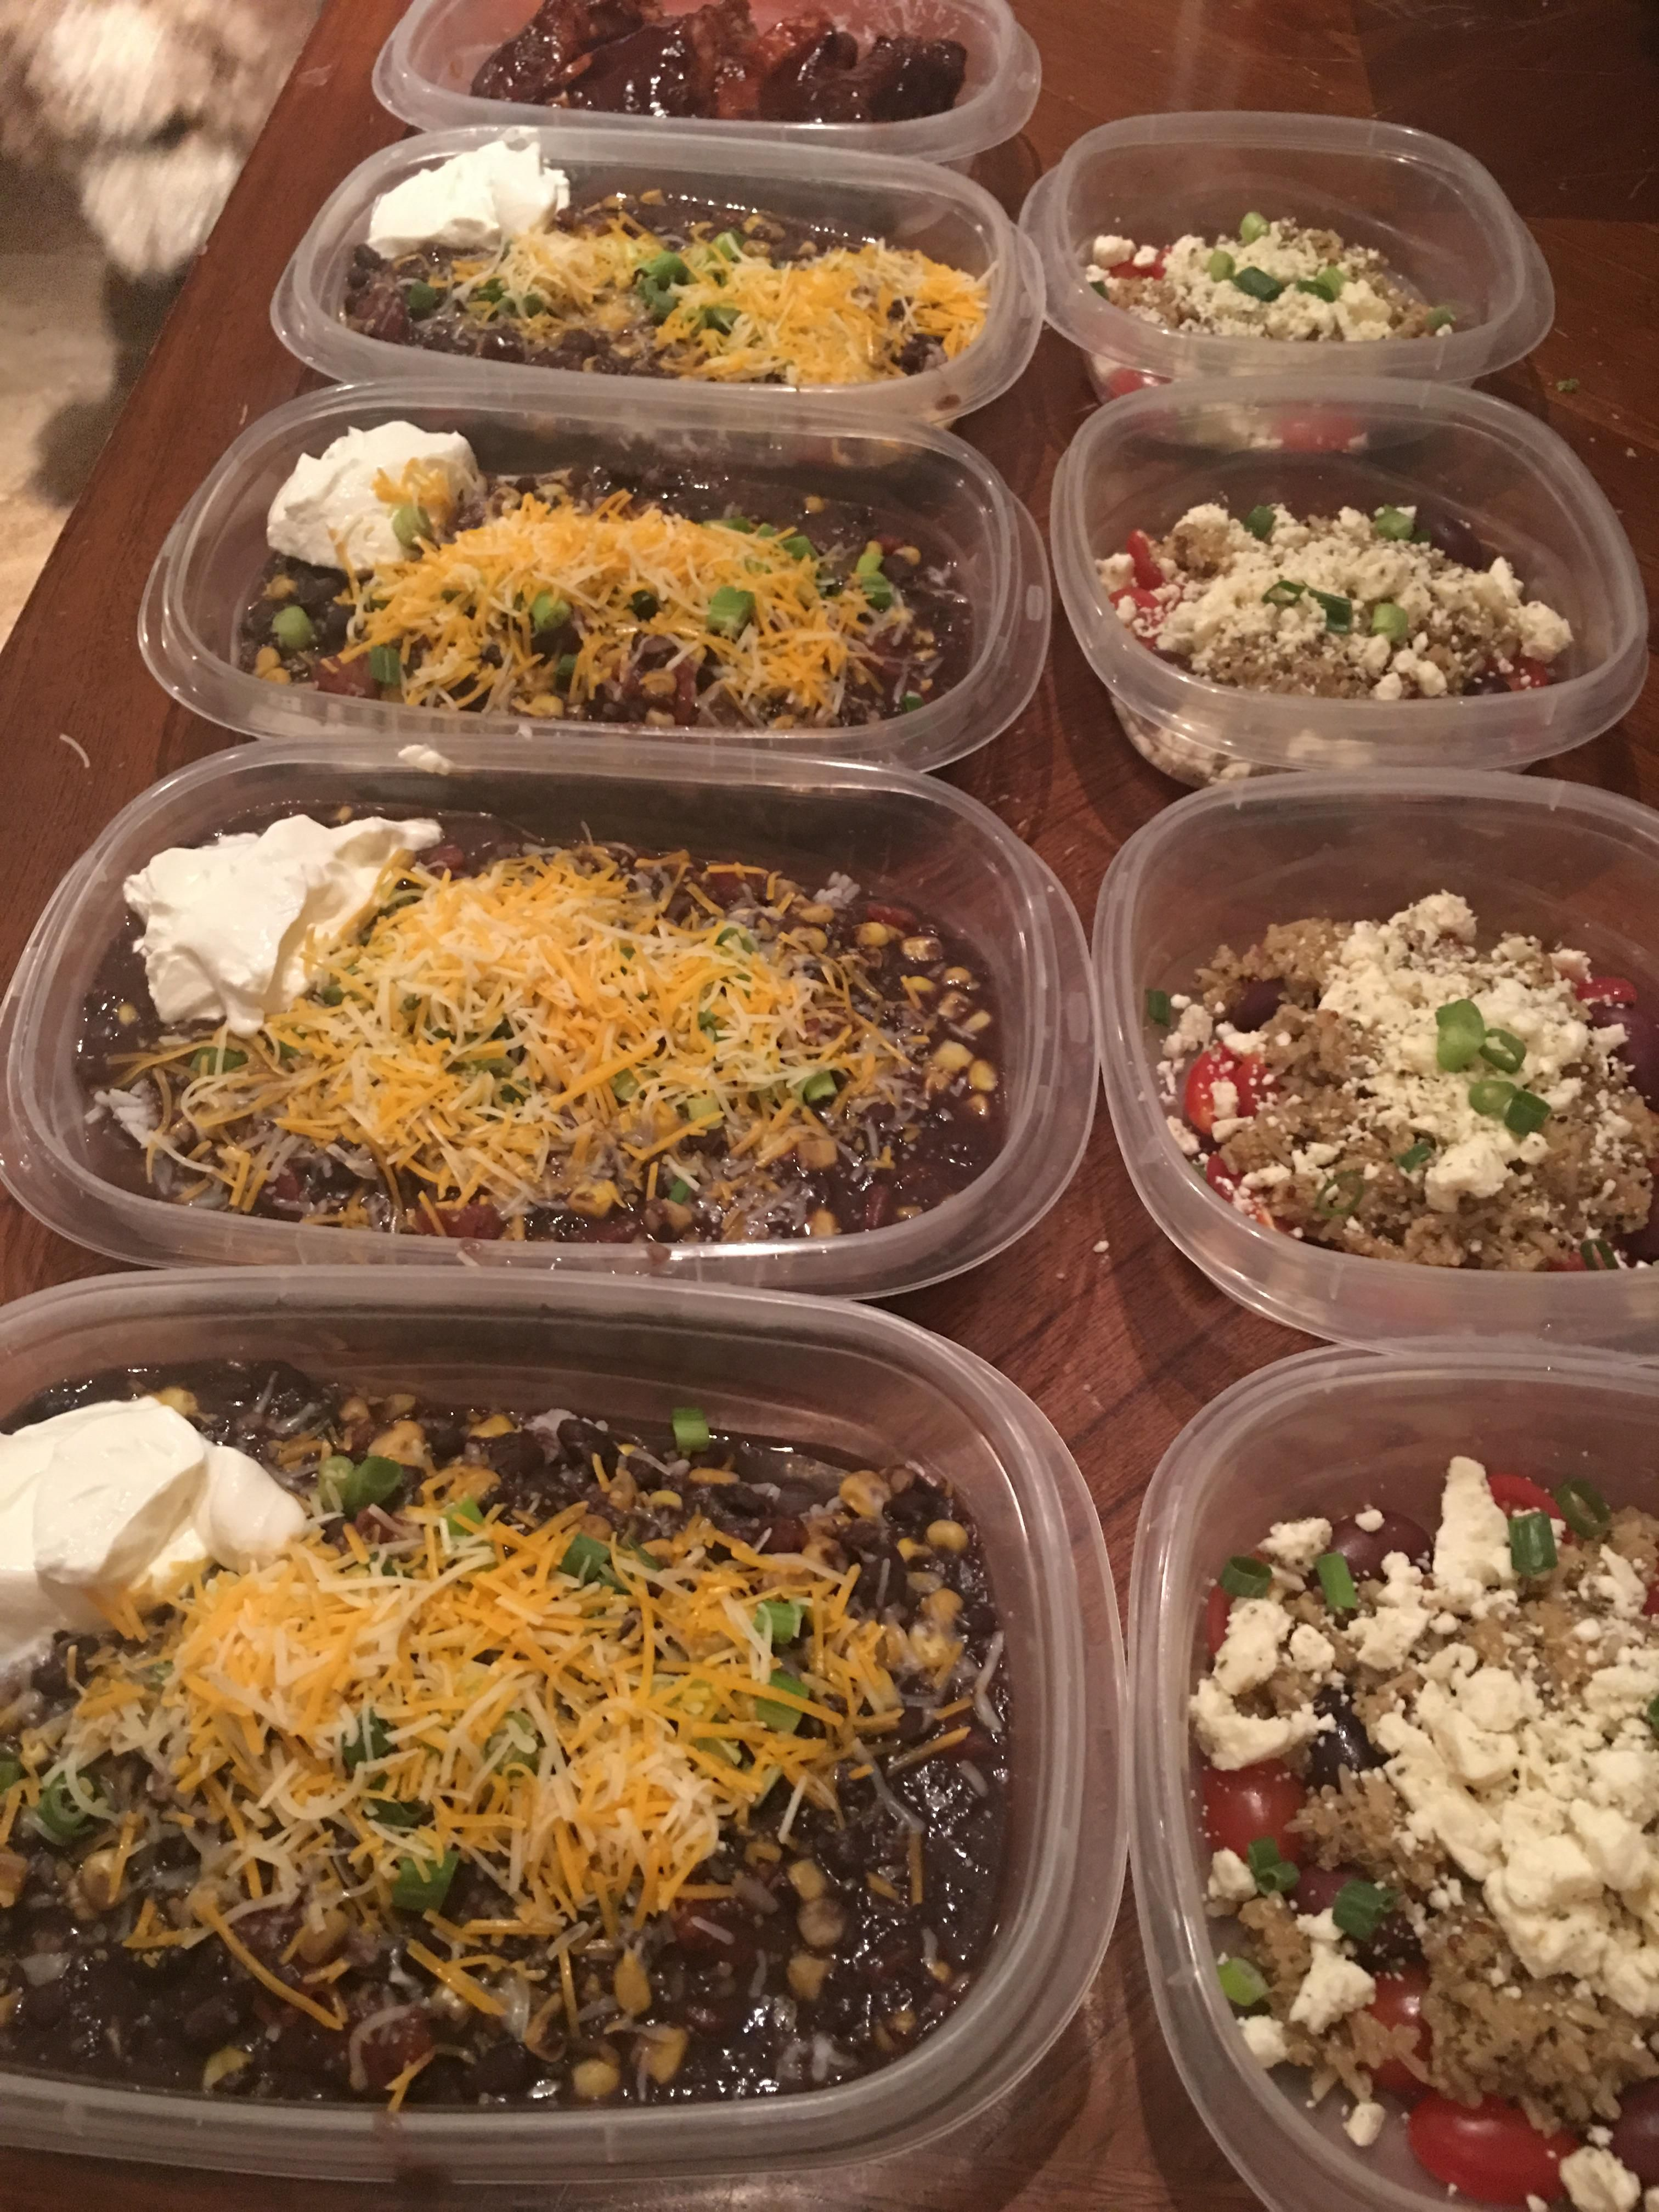 Pin on Meal Prepping